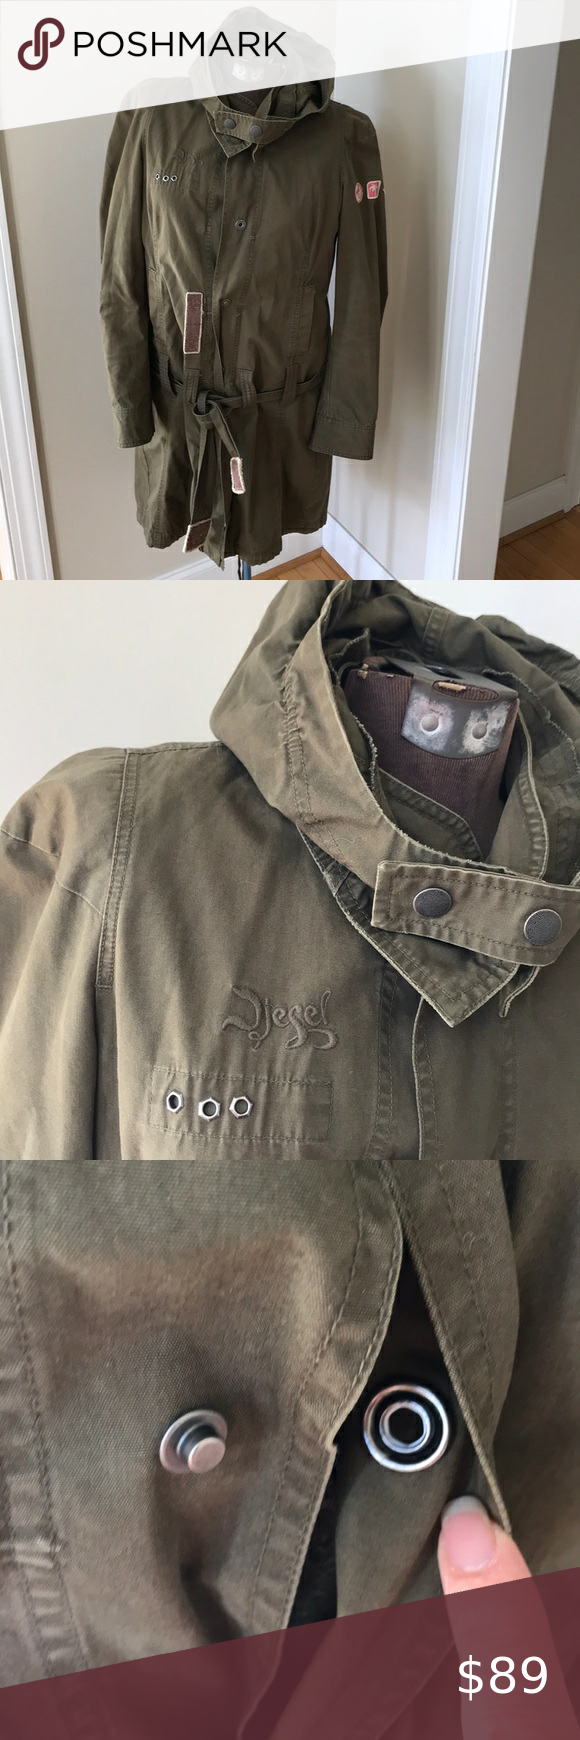 Diesel Army Green Military Trench Coat Jacket M Military Trench Coat Trench Coat Jackets Diesel Jacket [ 1740 x 580 Pixel ]